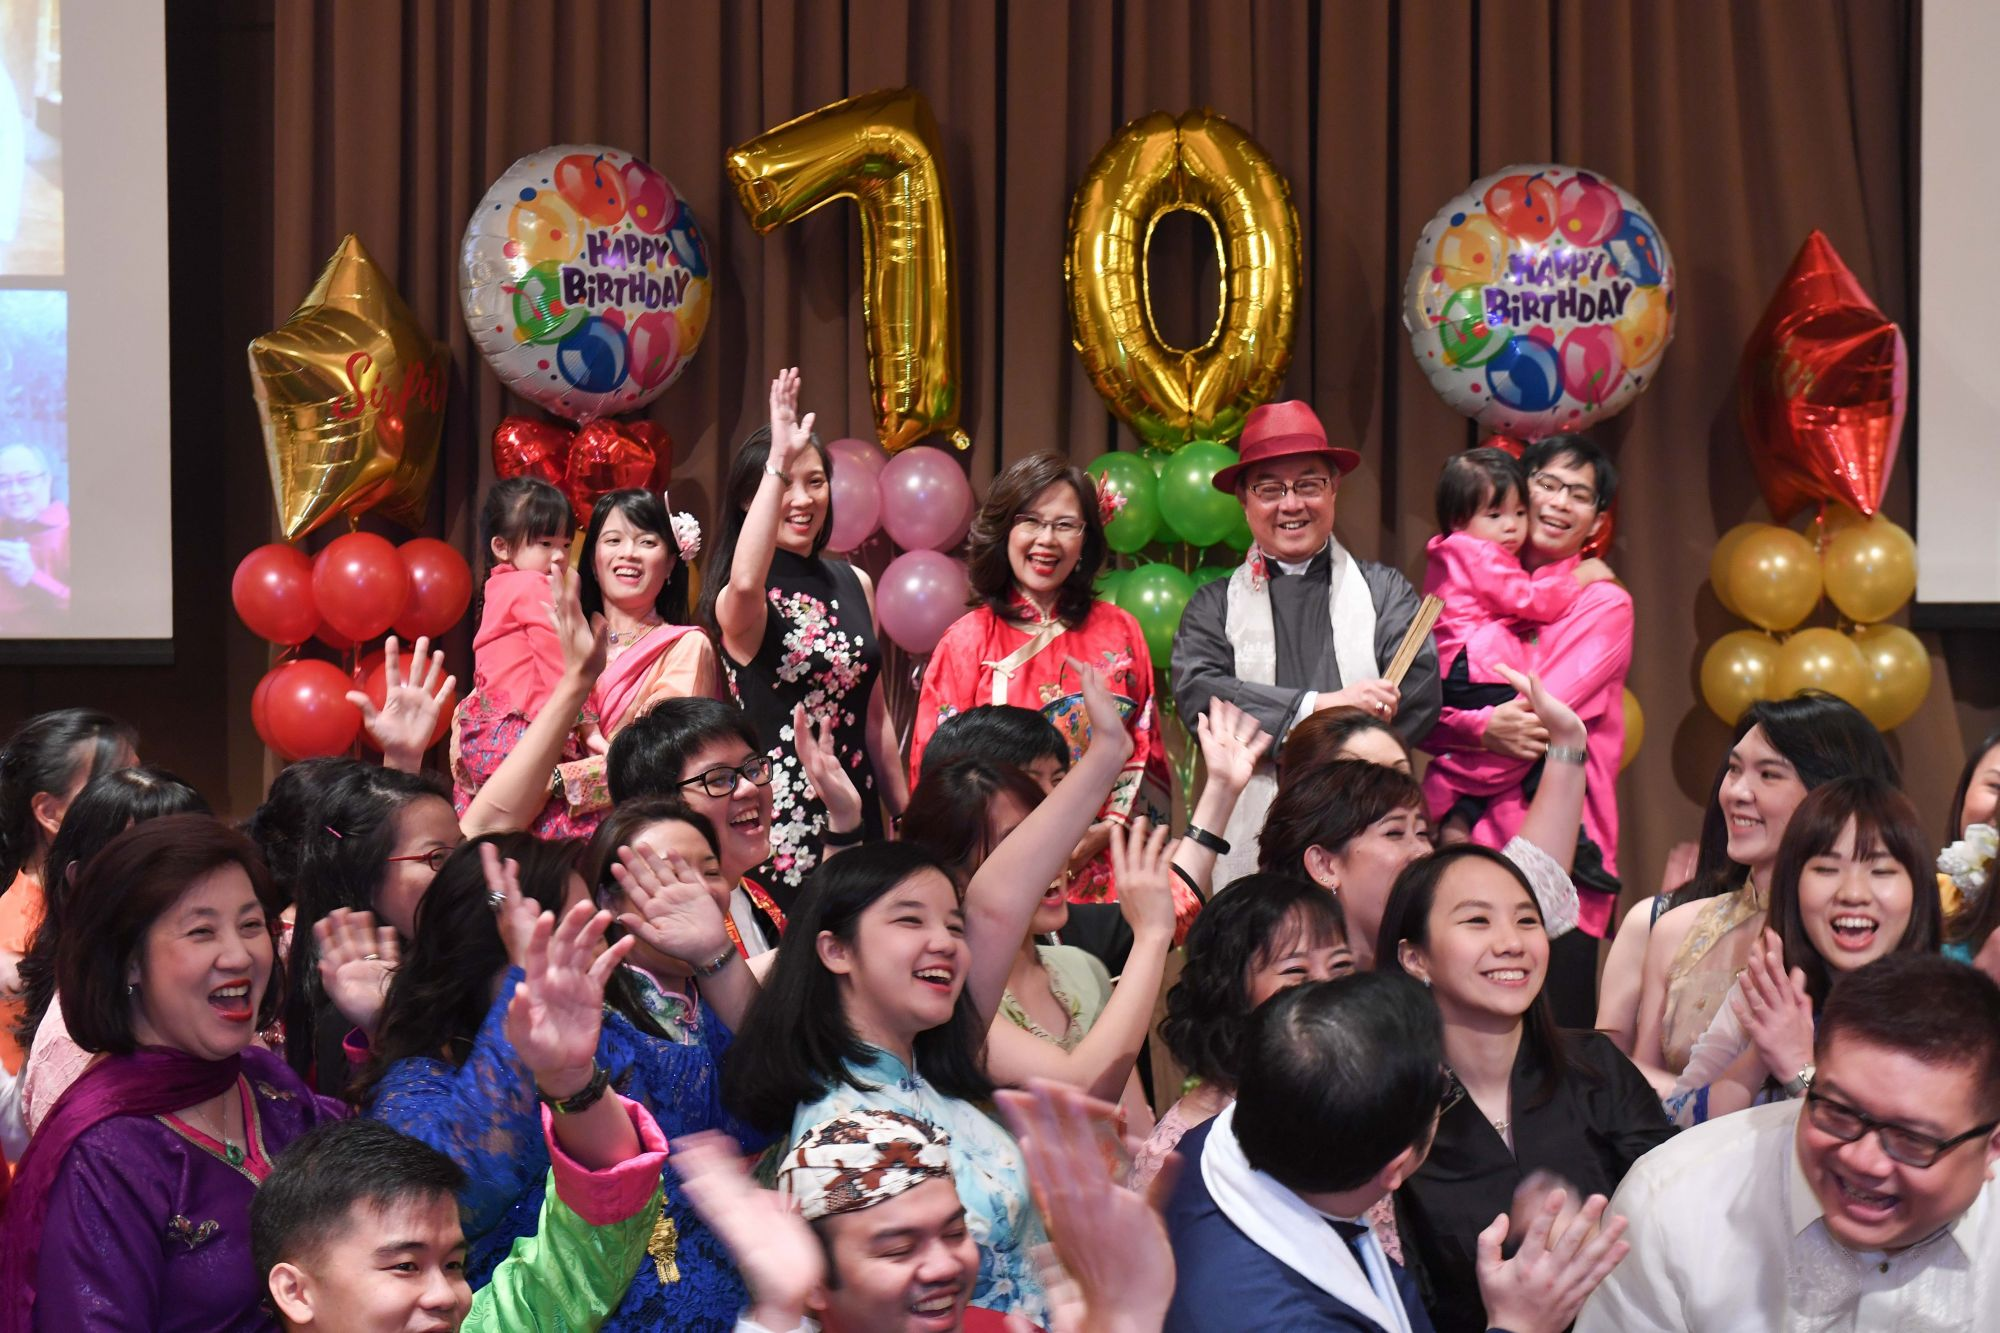 Peter Low's 70th Birthday Party